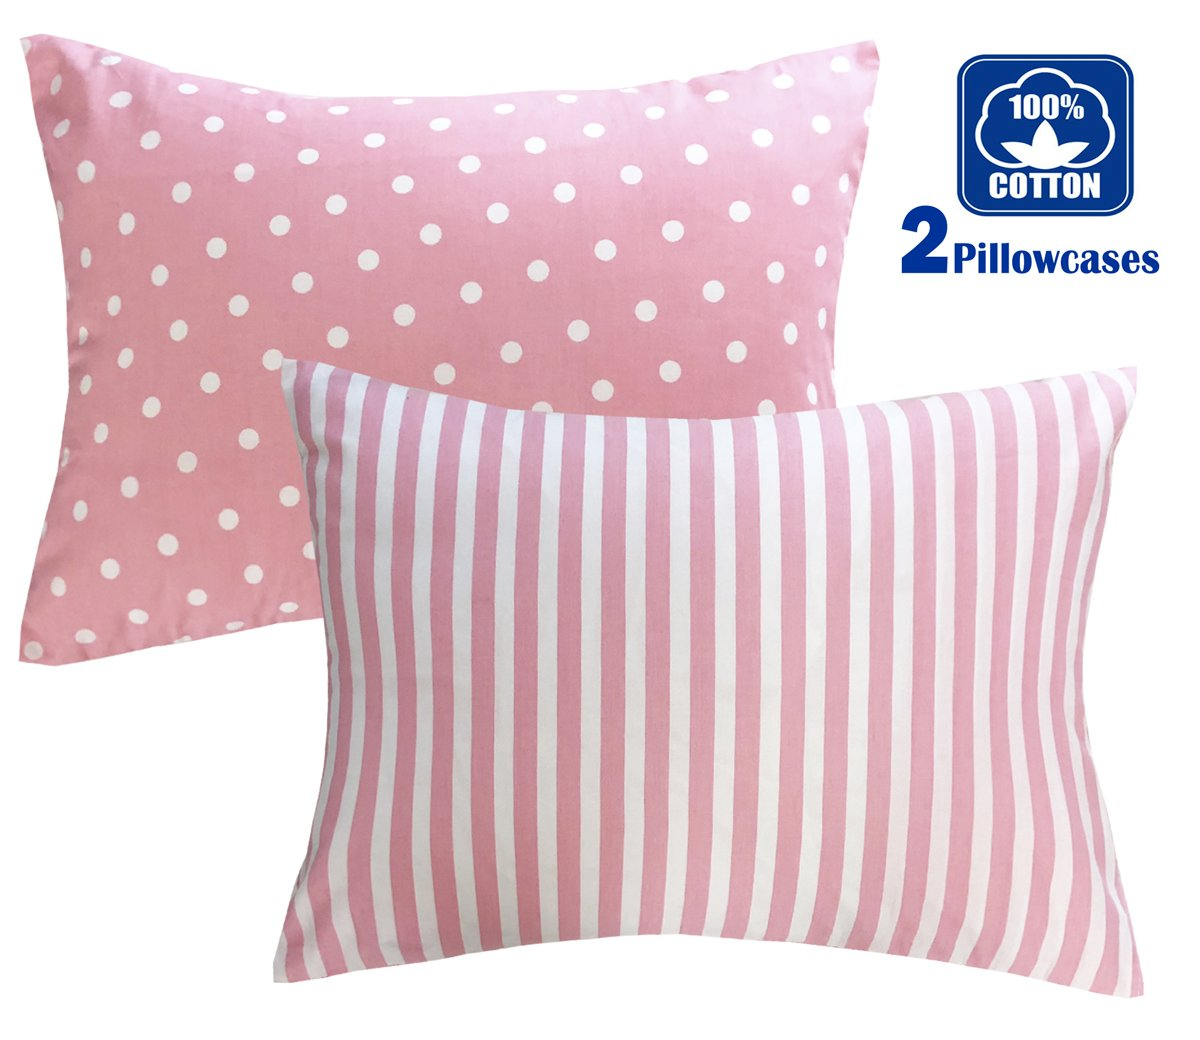 100% Organic Cotton Toddler Pillowcases Set of 2, Soft and Breathable, 13